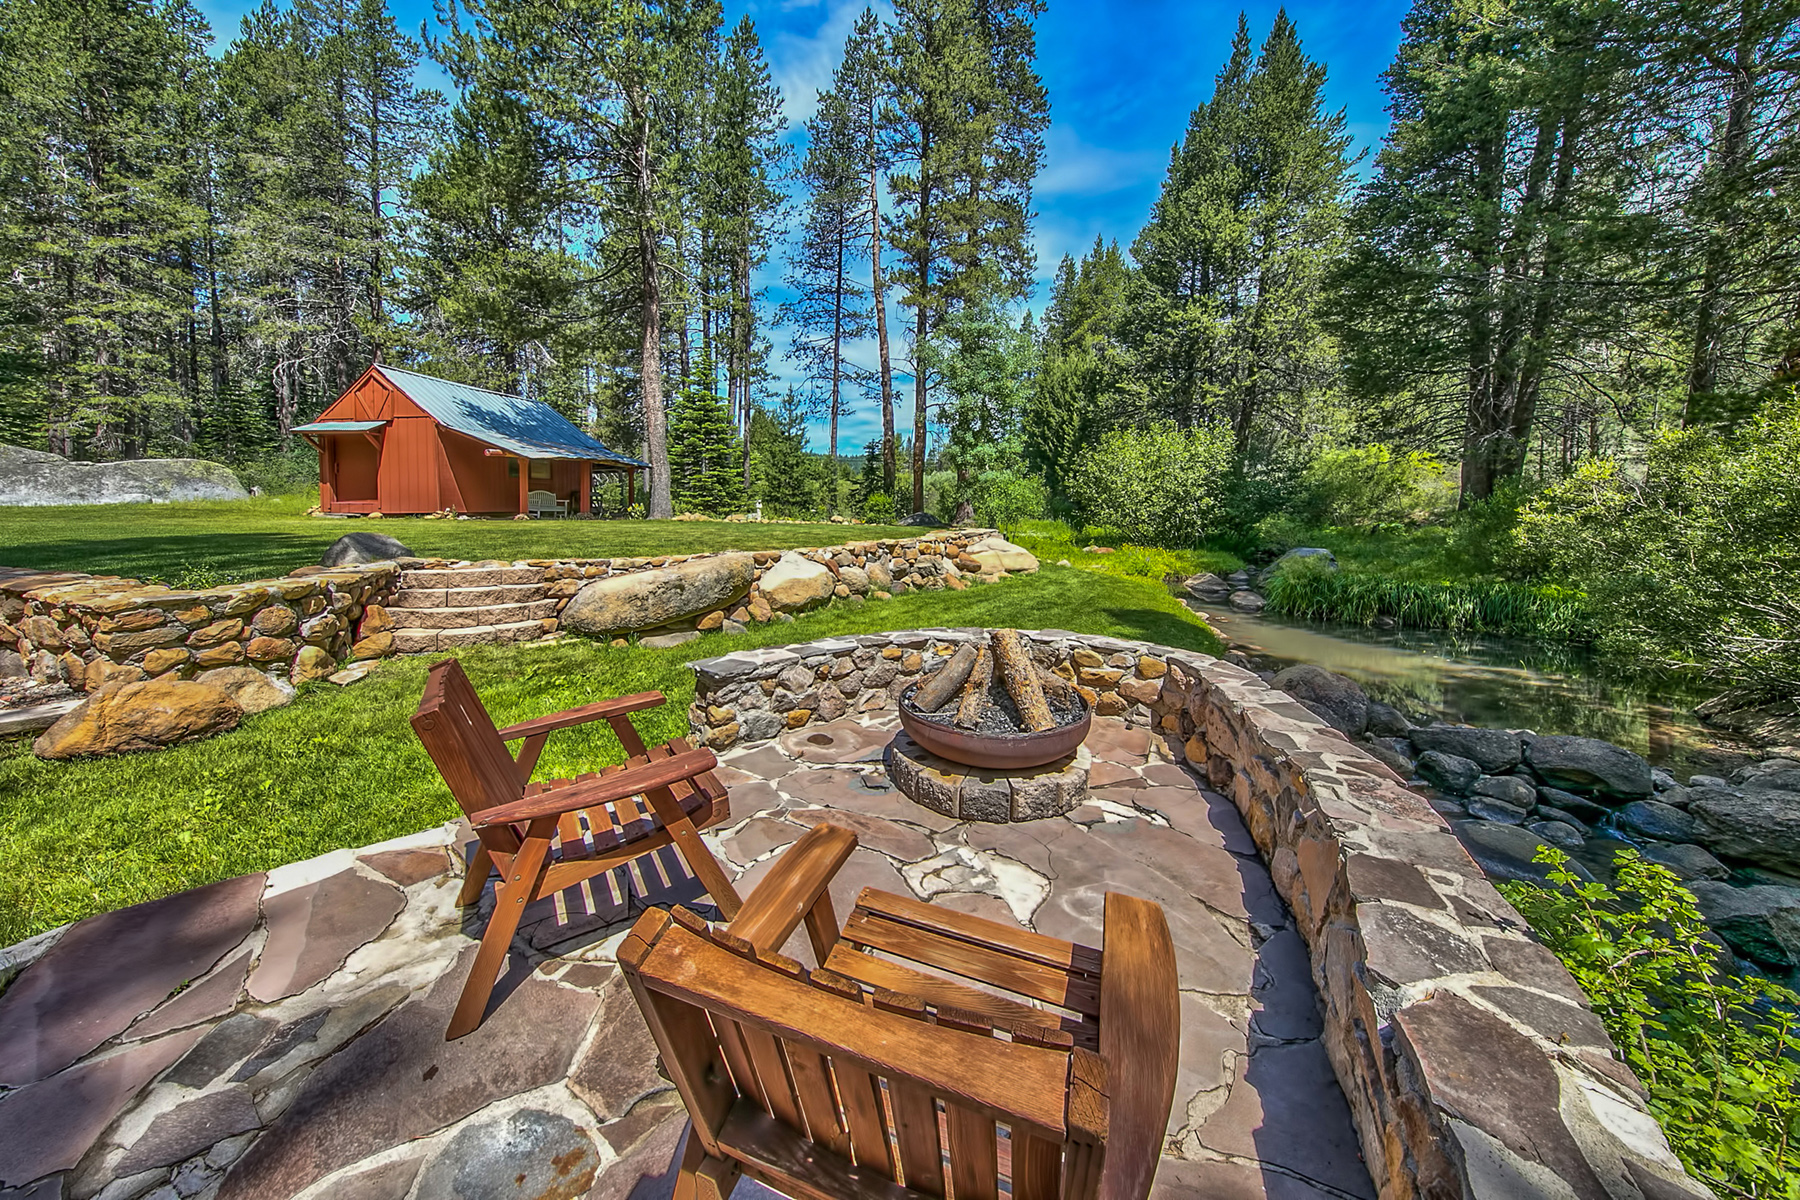 Single Family Home for Active at 11796 Euer Valley Road Truckee, California 96161 United States